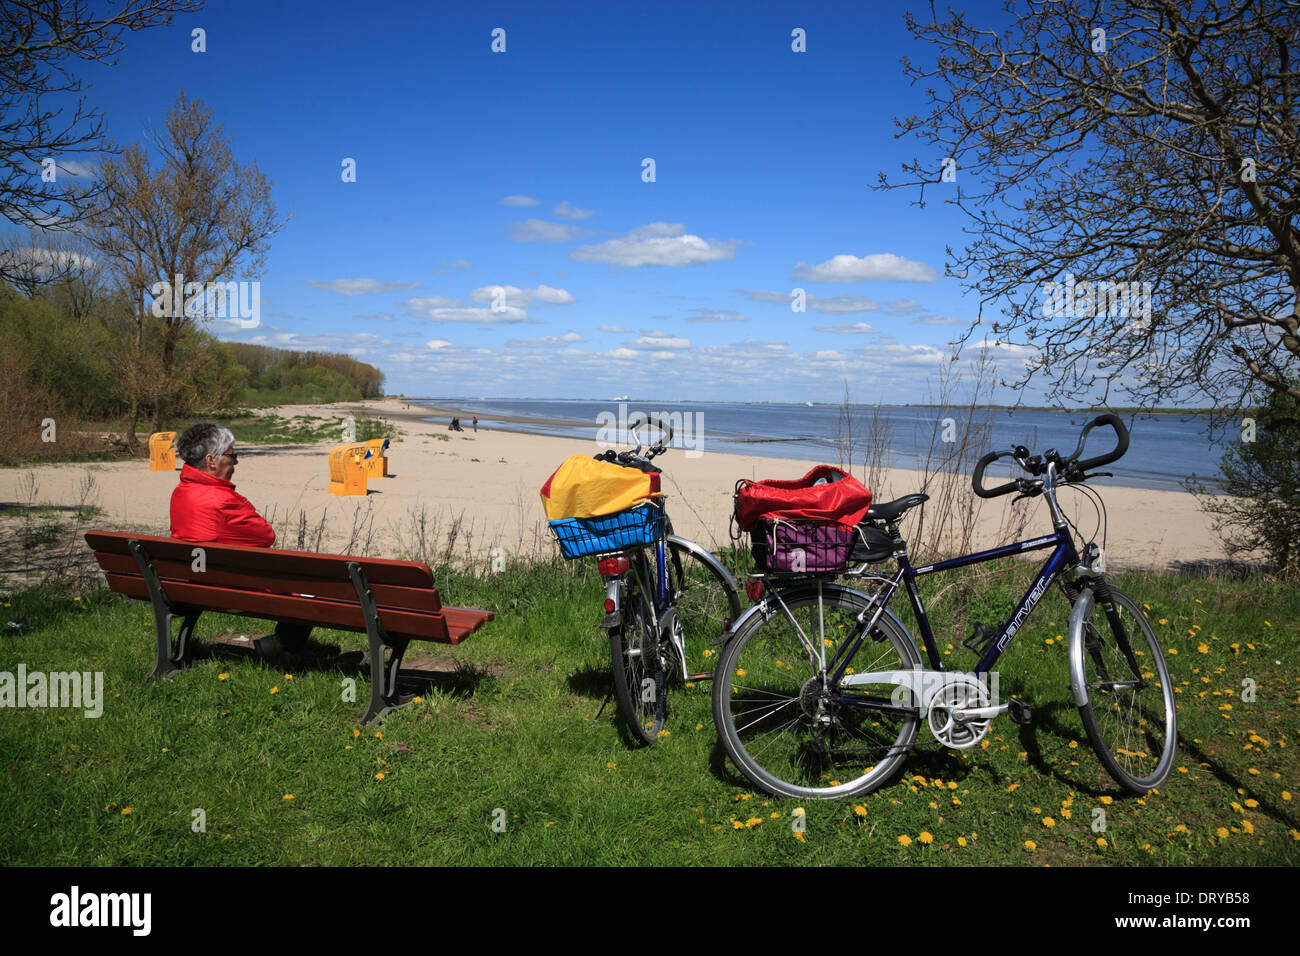 Elbe river cycle route, cycle stop at Krautsand island beach, Lower Saxony, Germany, Europe Stock Photo